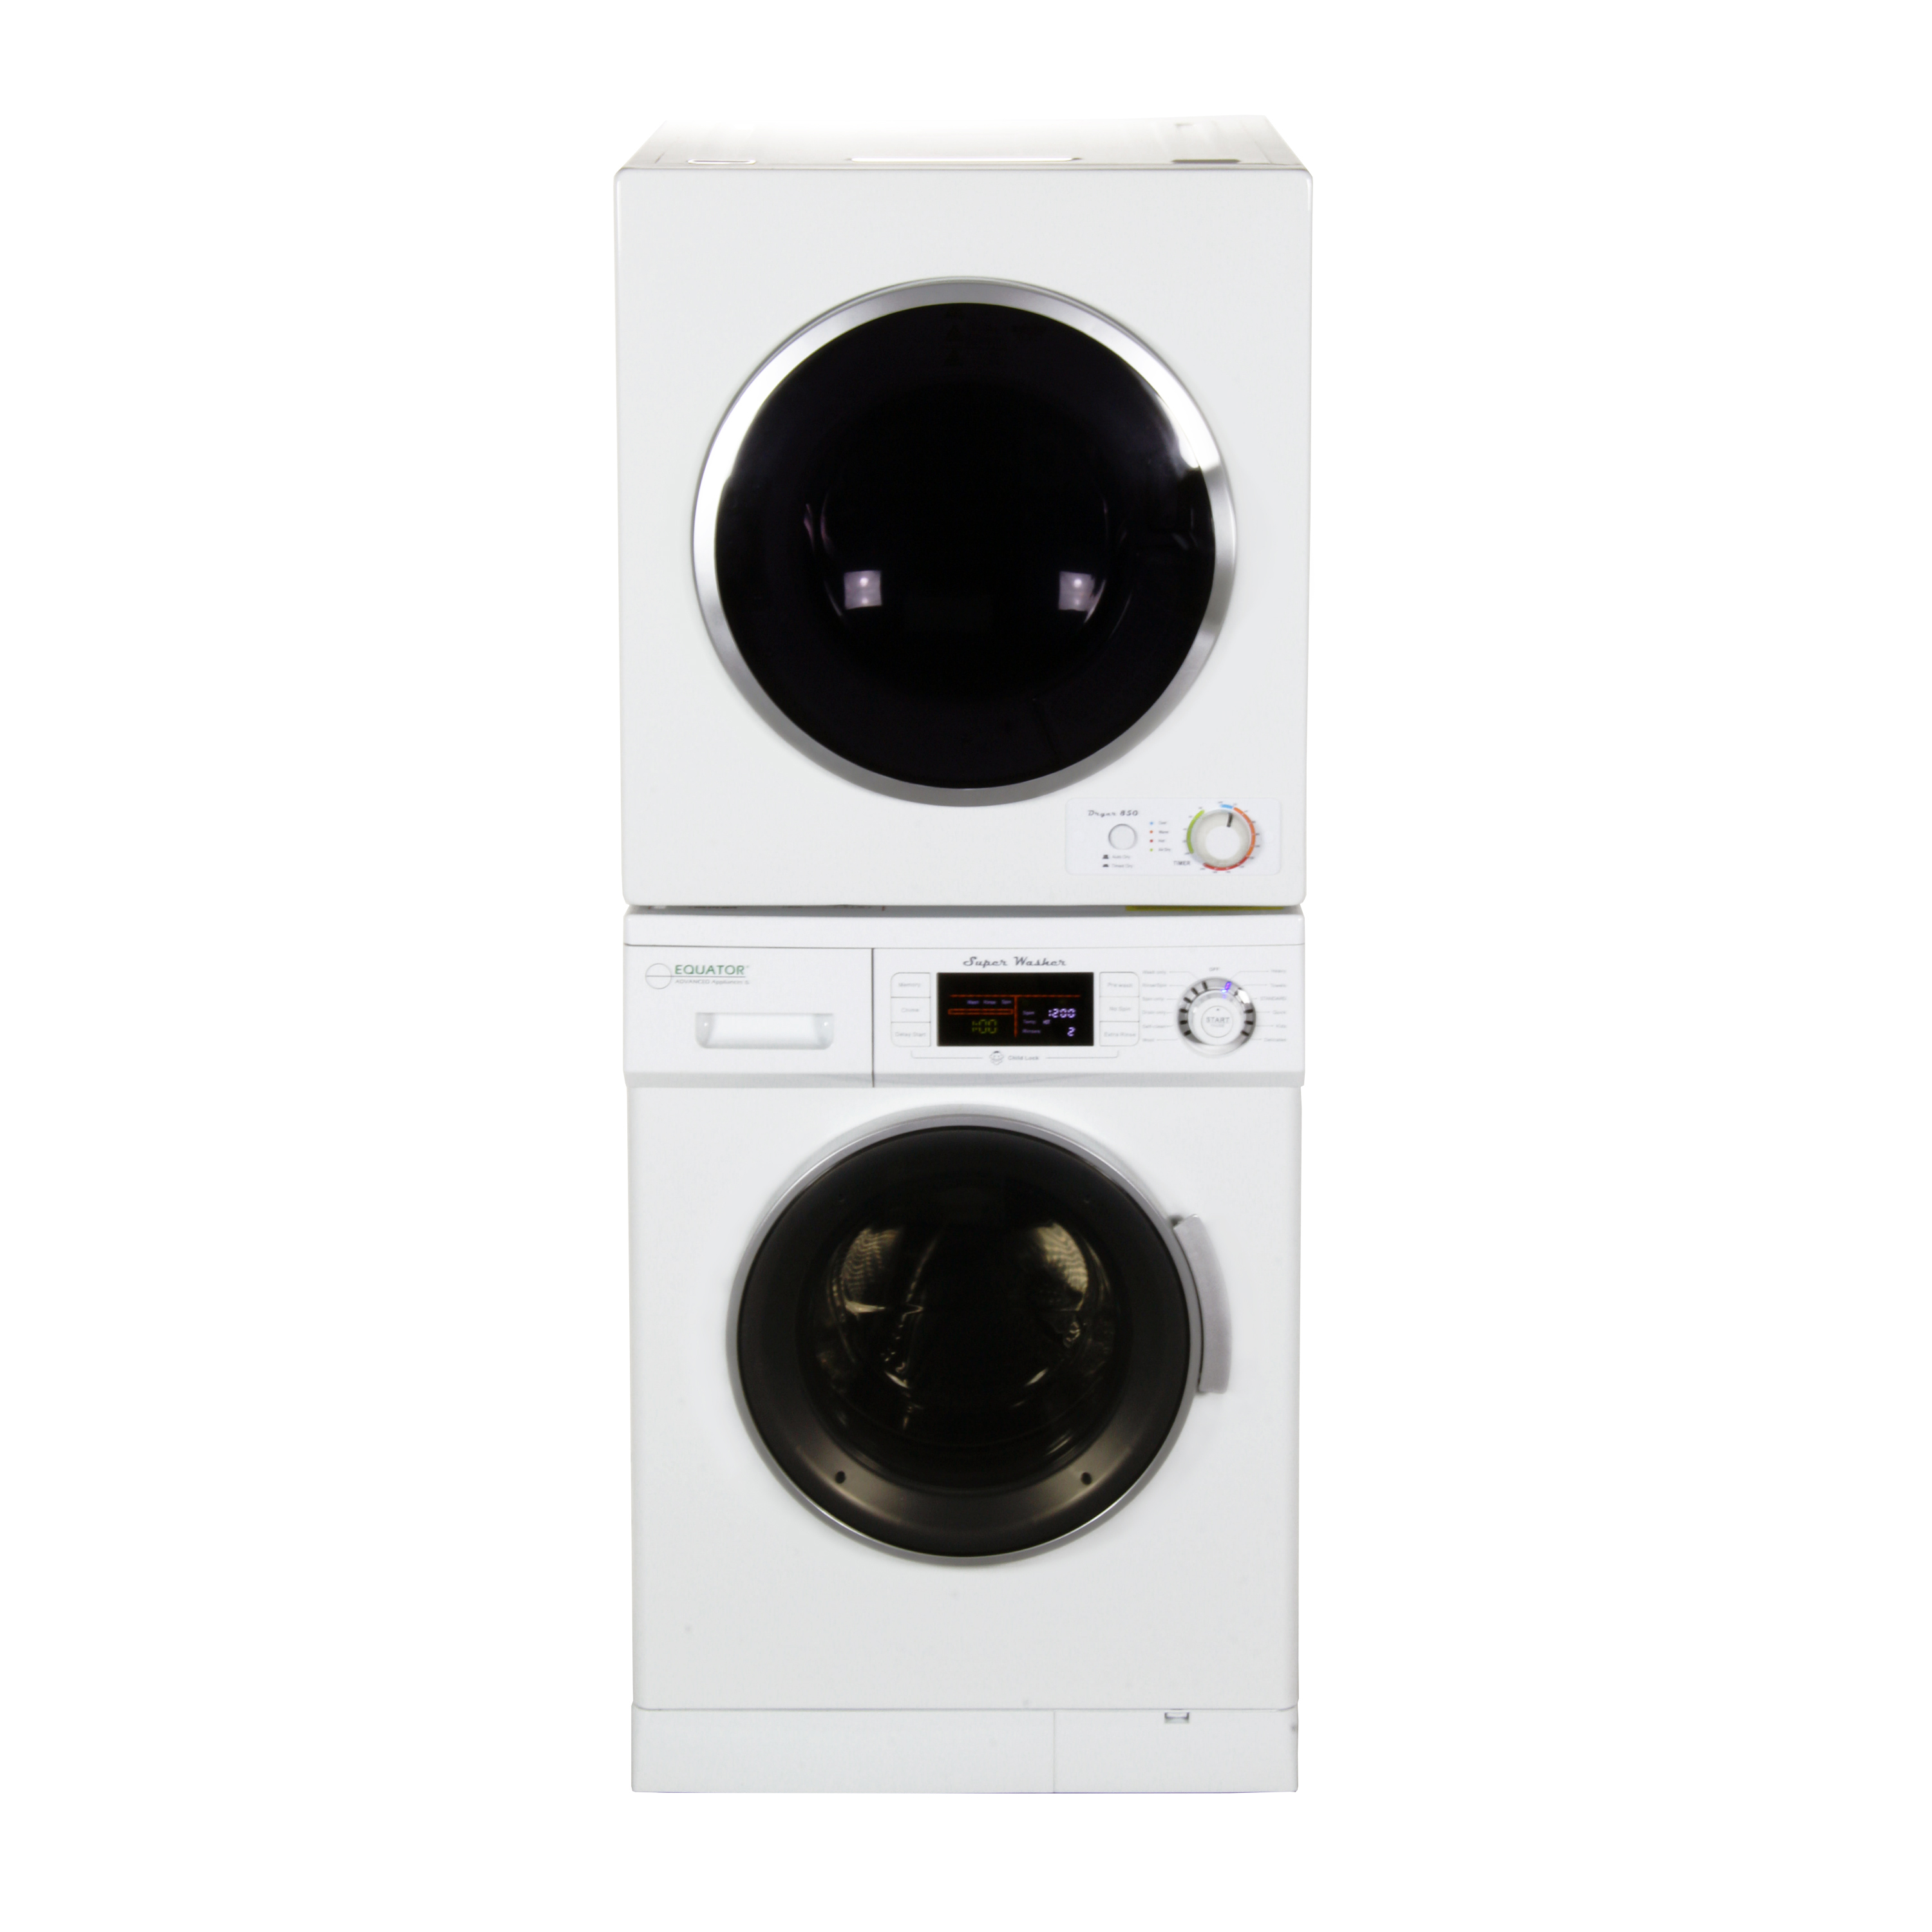 Equator Stackable Washer Dryer Set EW 824 + ED 850 V